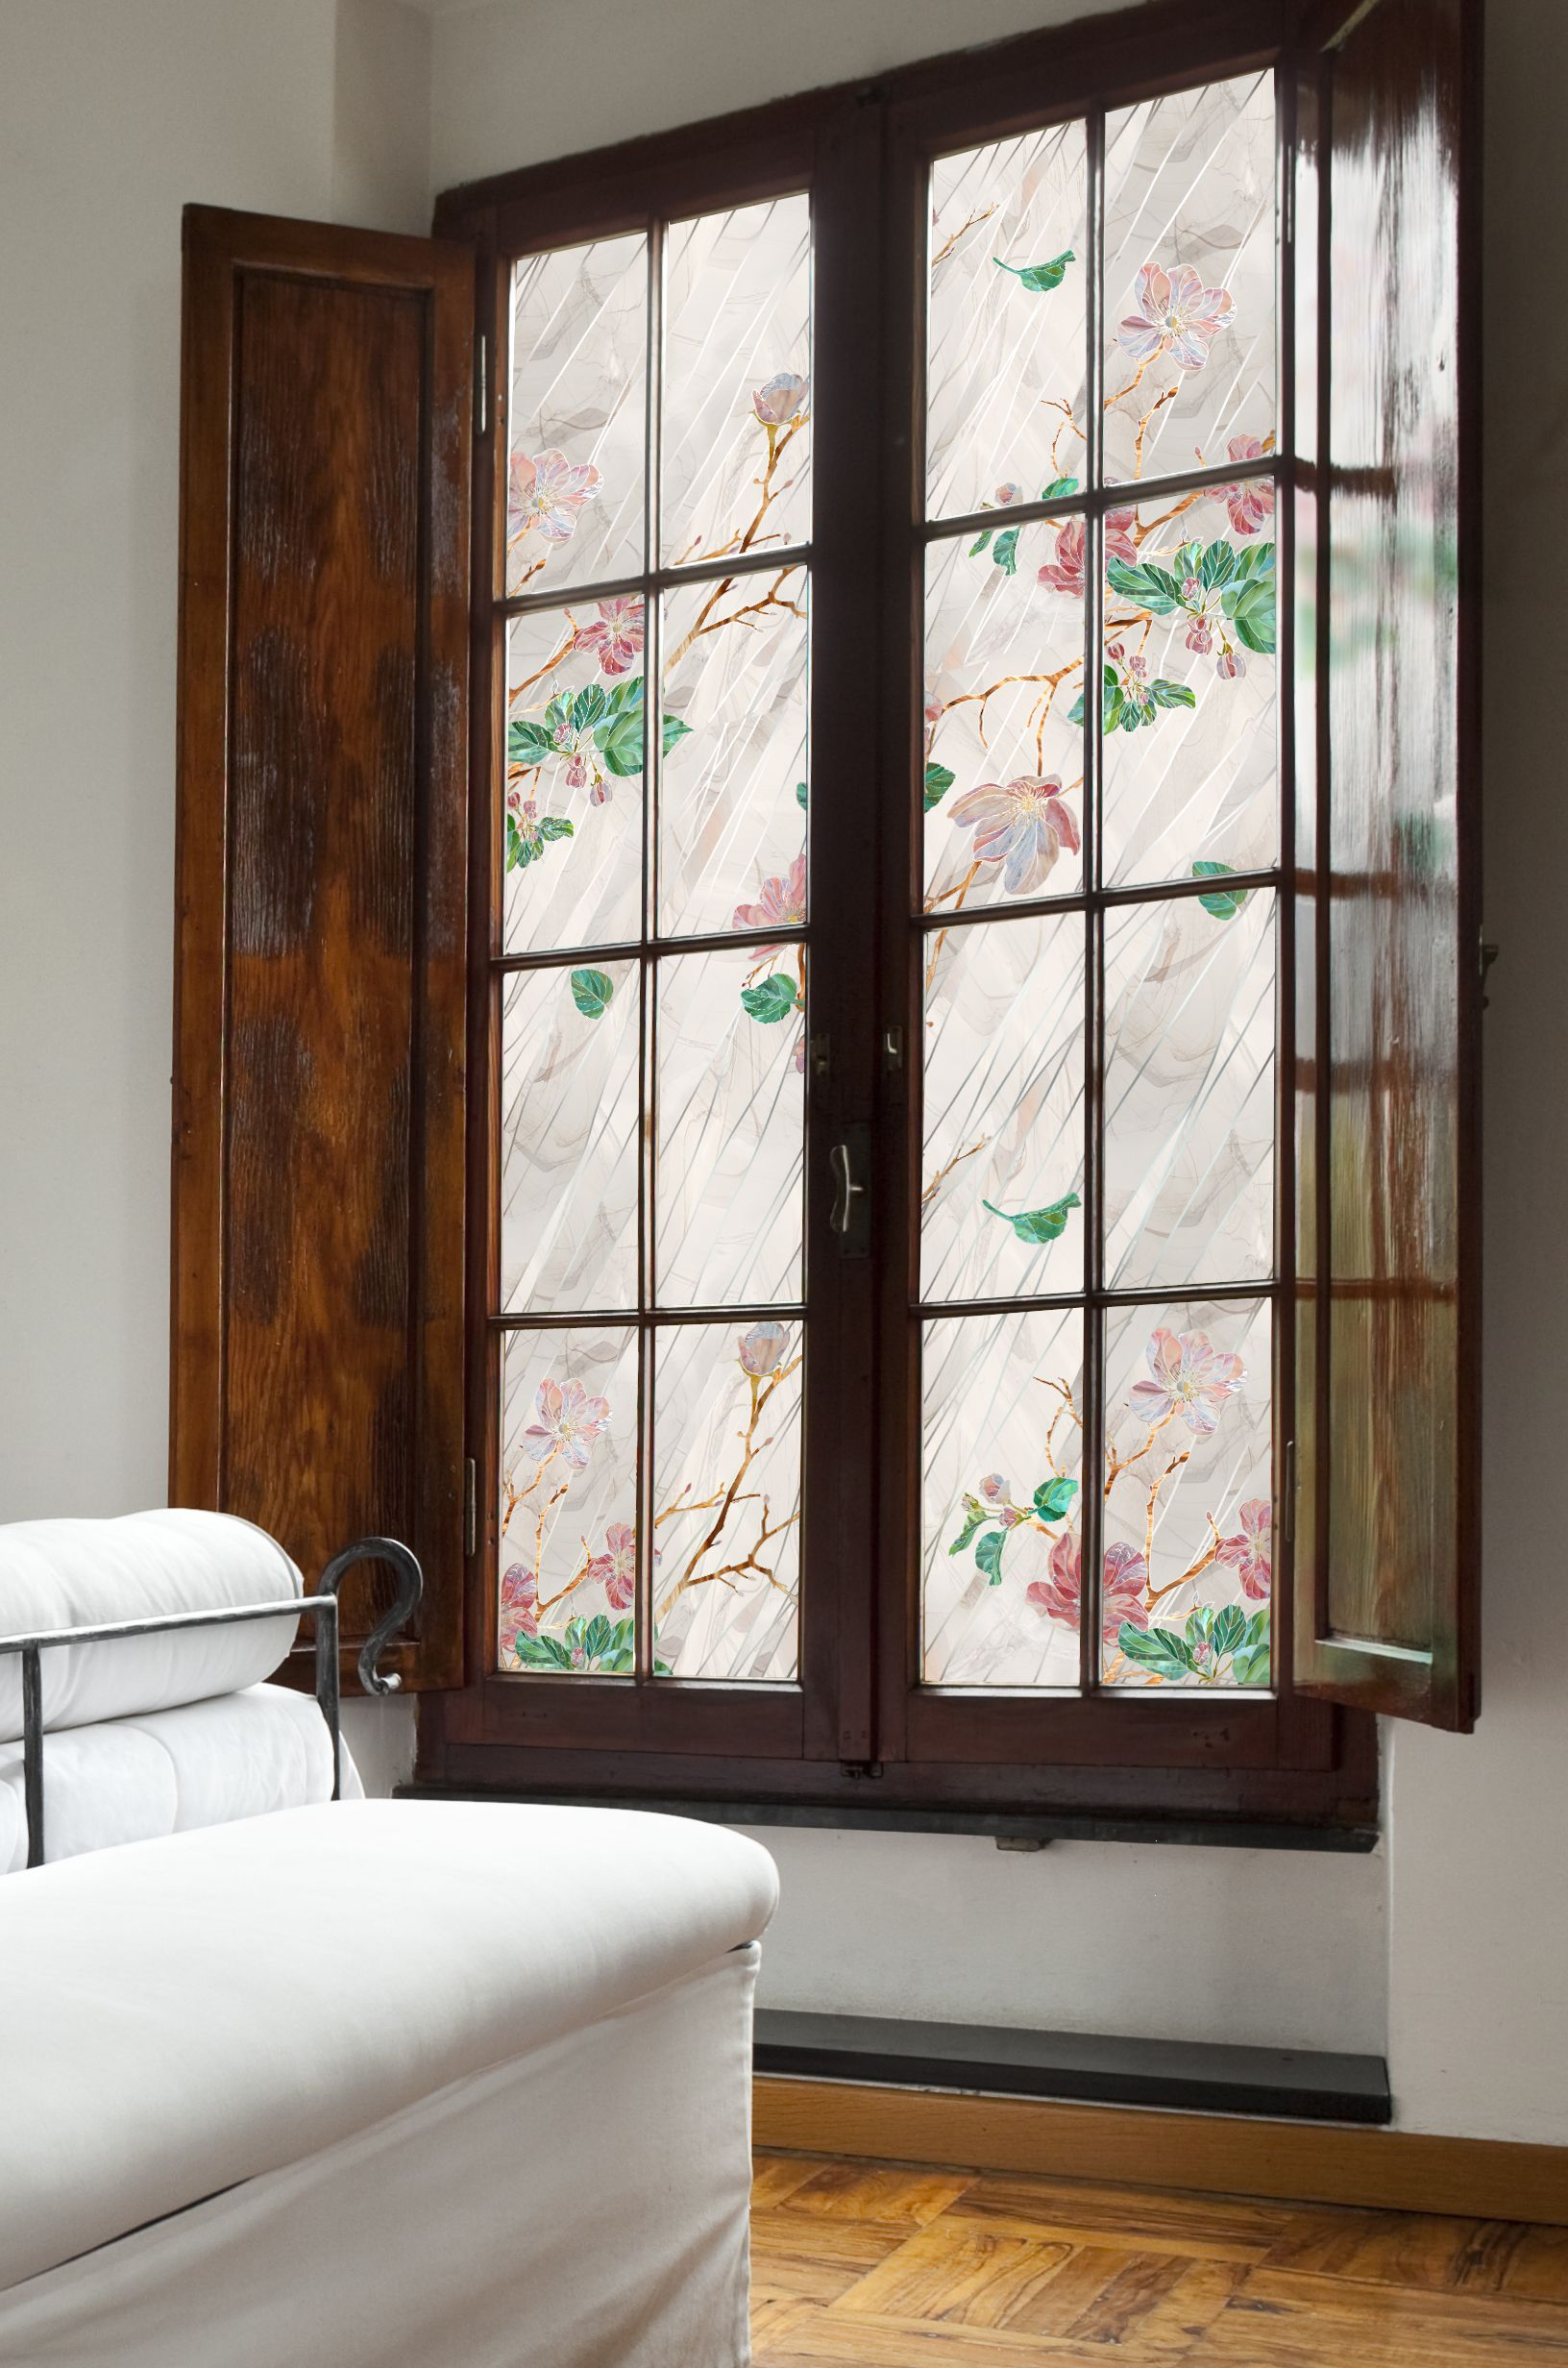 Window Wall Designs Wild Rose By Artscape 24x36 Artscape S Current Window Film